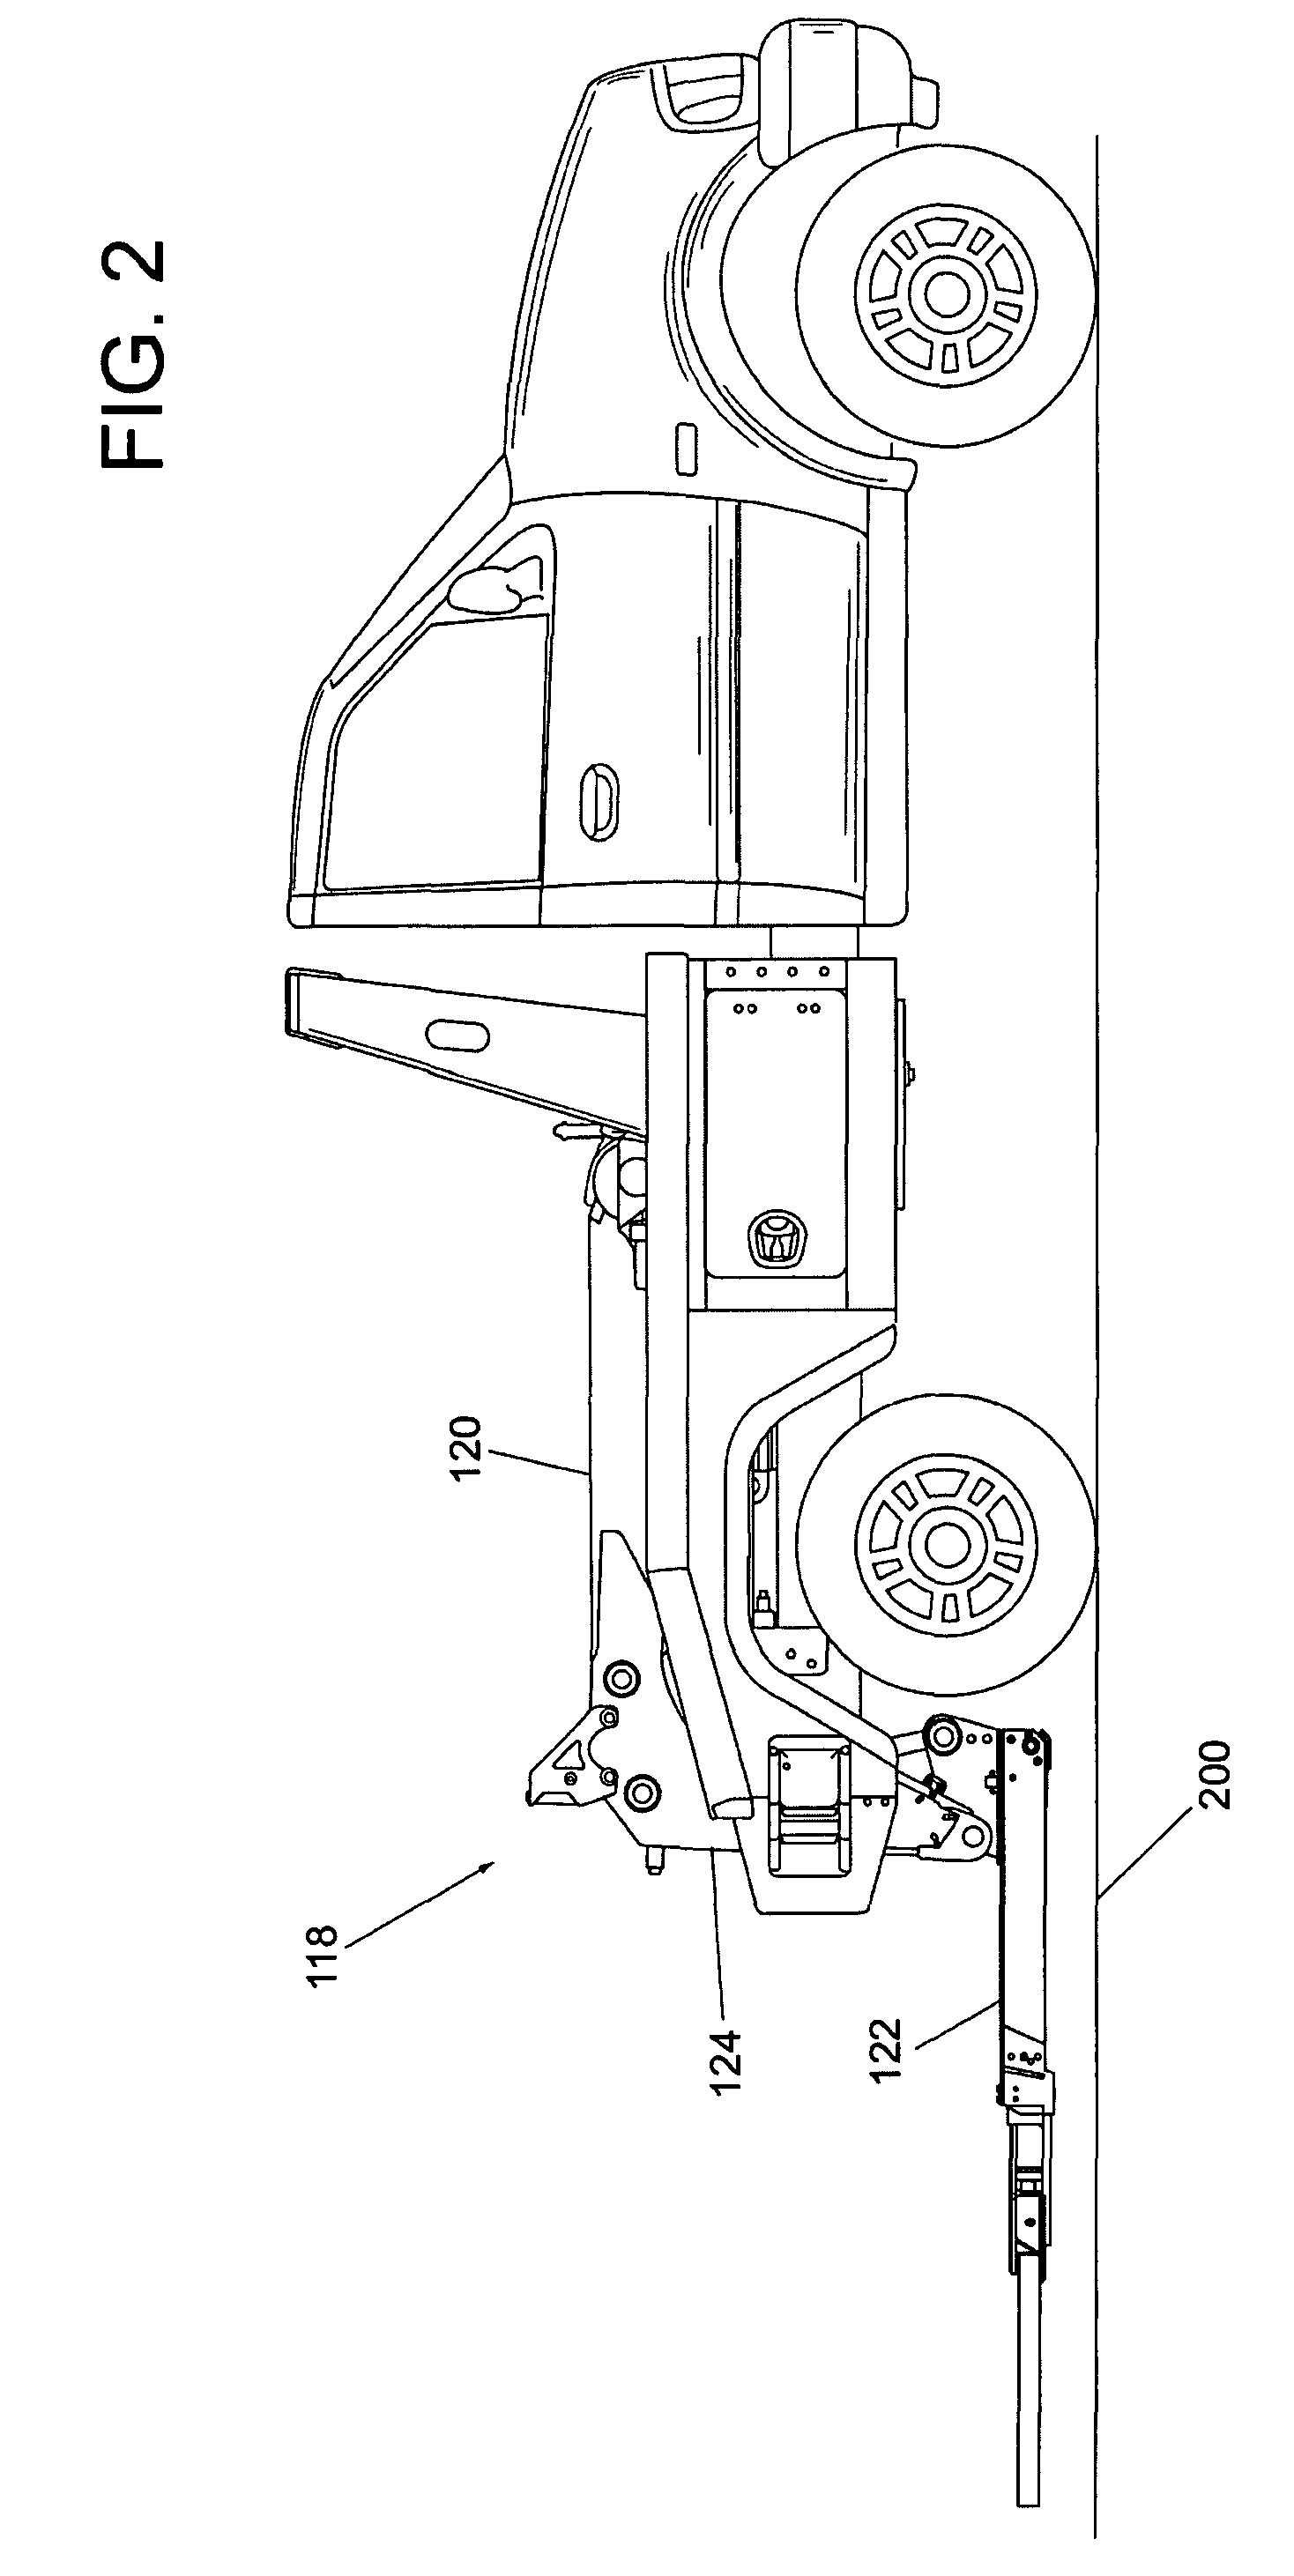 patent us7909561 tow truck underlift control google patents patent drawing